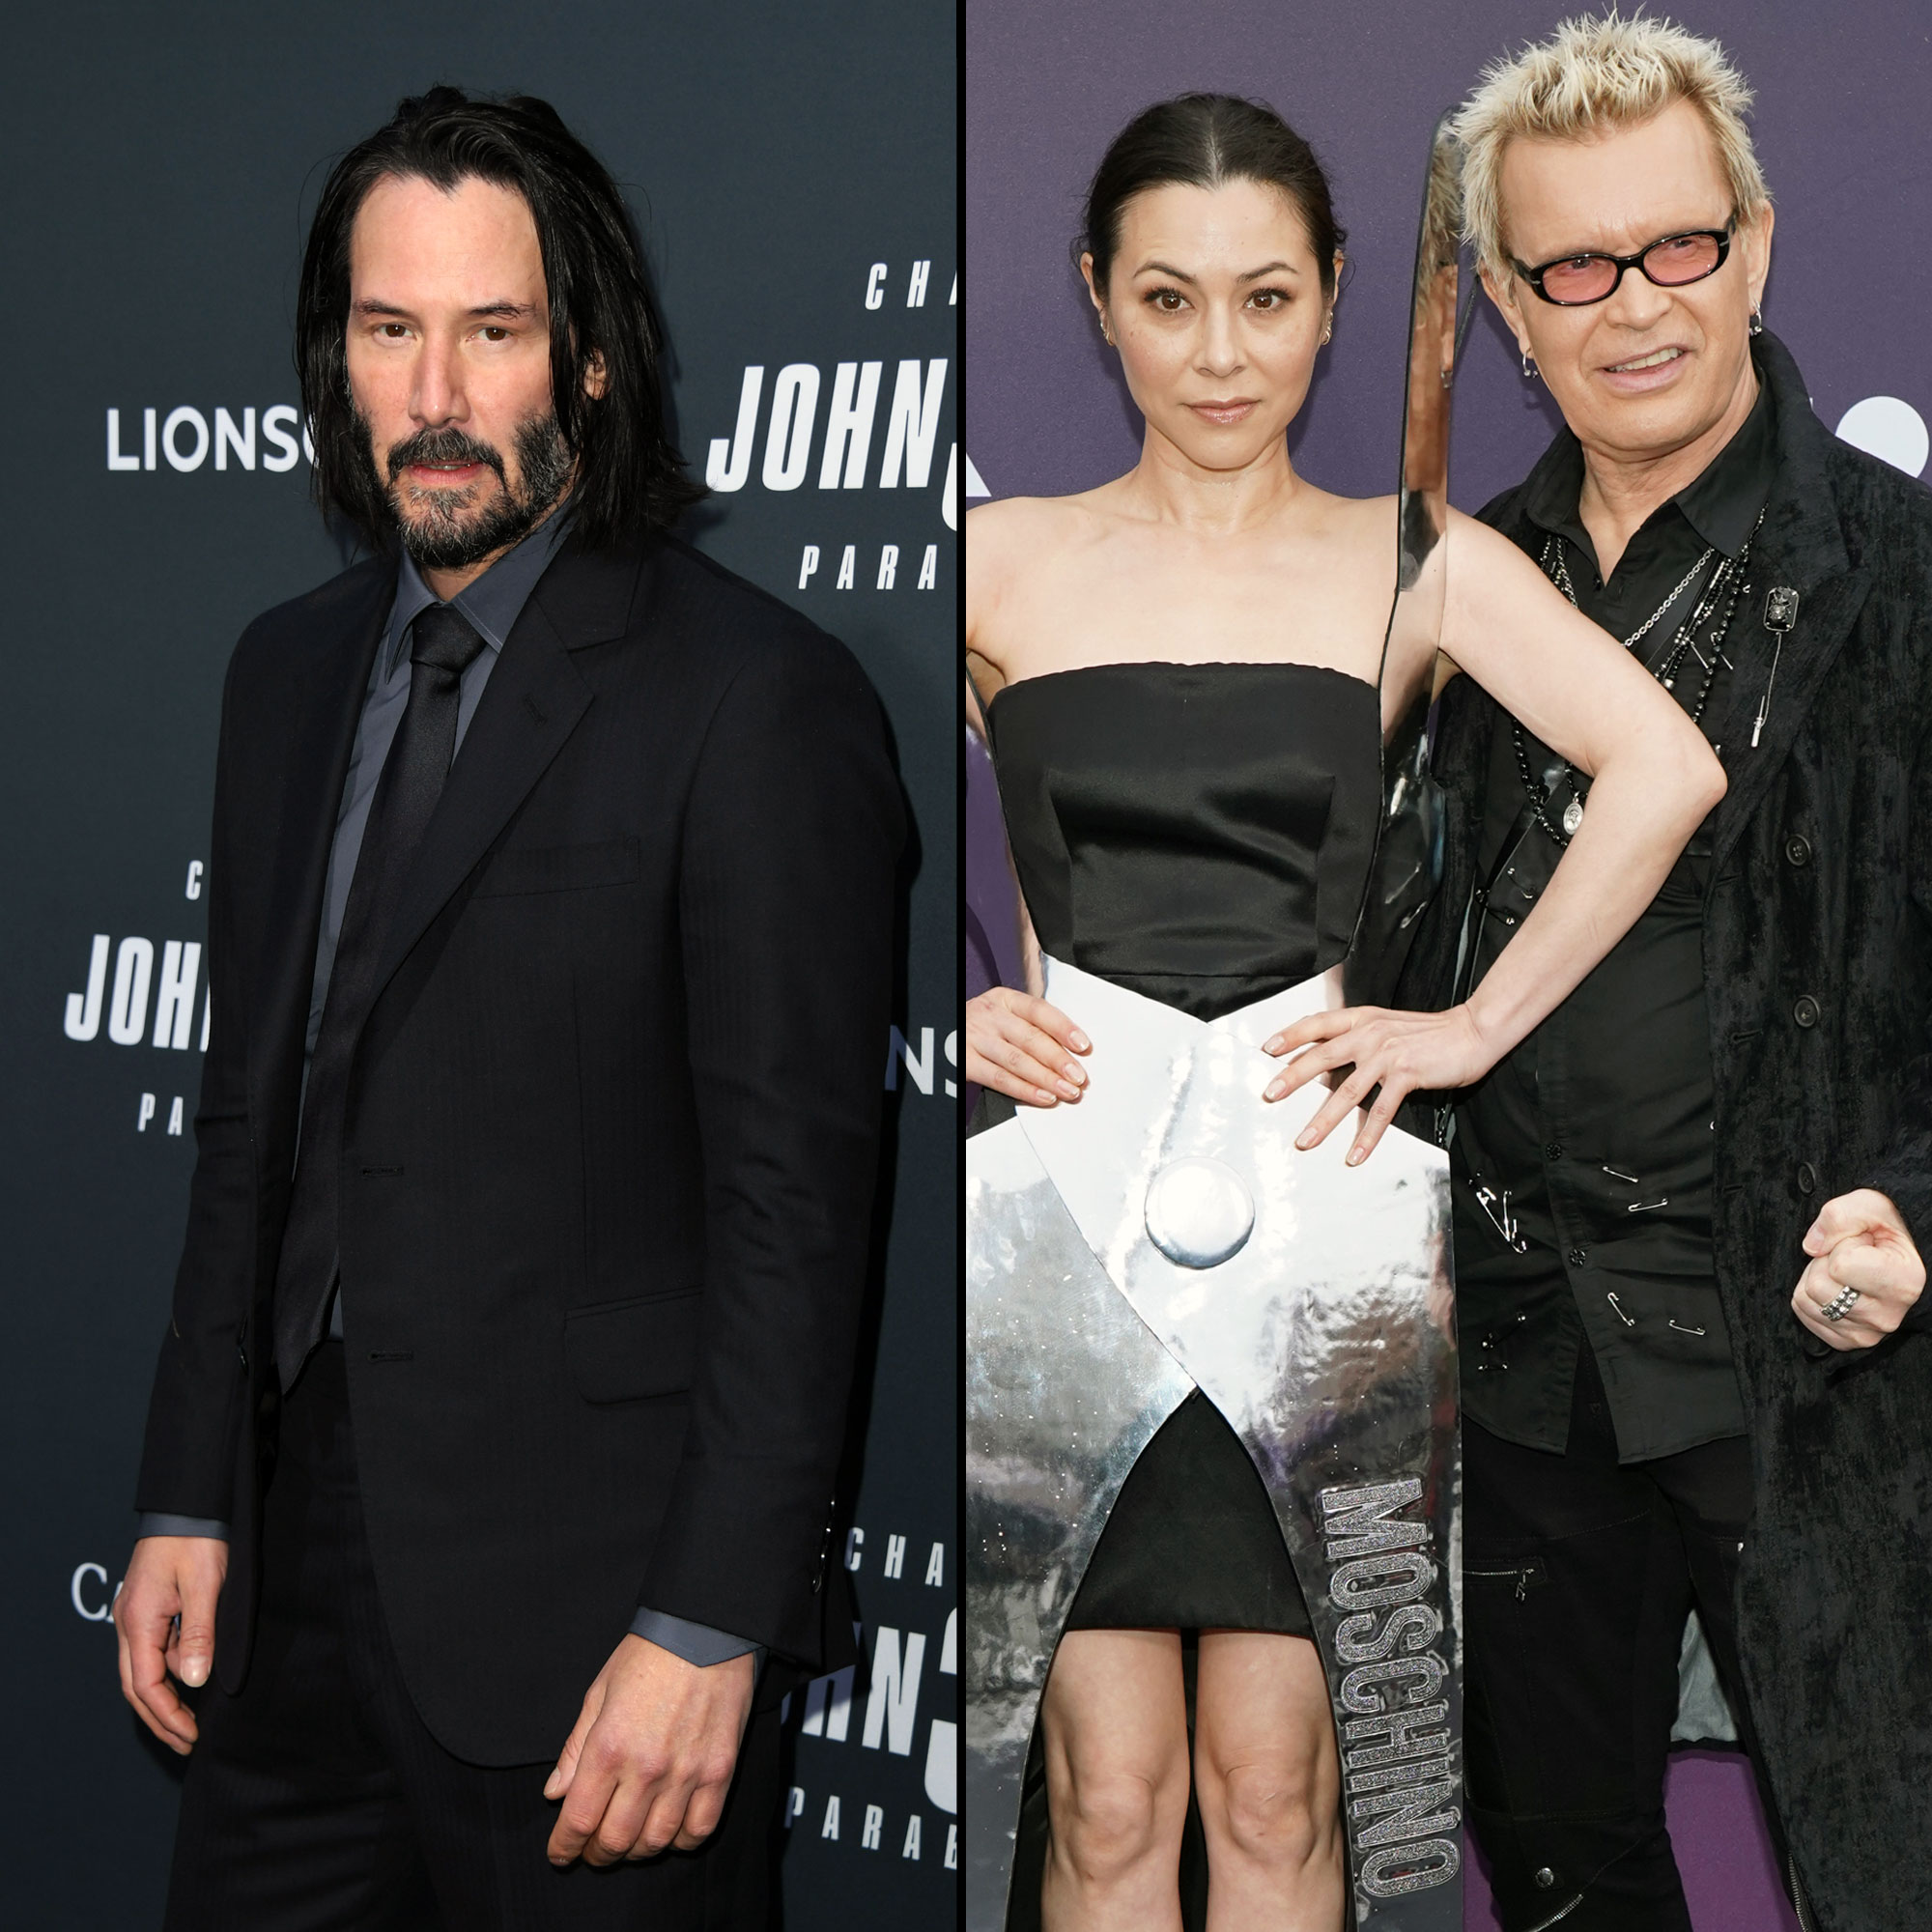 Keanu Reeves, Ex China Chow 'Flirting' Next to Boyfriend Billy Idol-1 - Keanu Reeves, China Chow, and Billy Idol